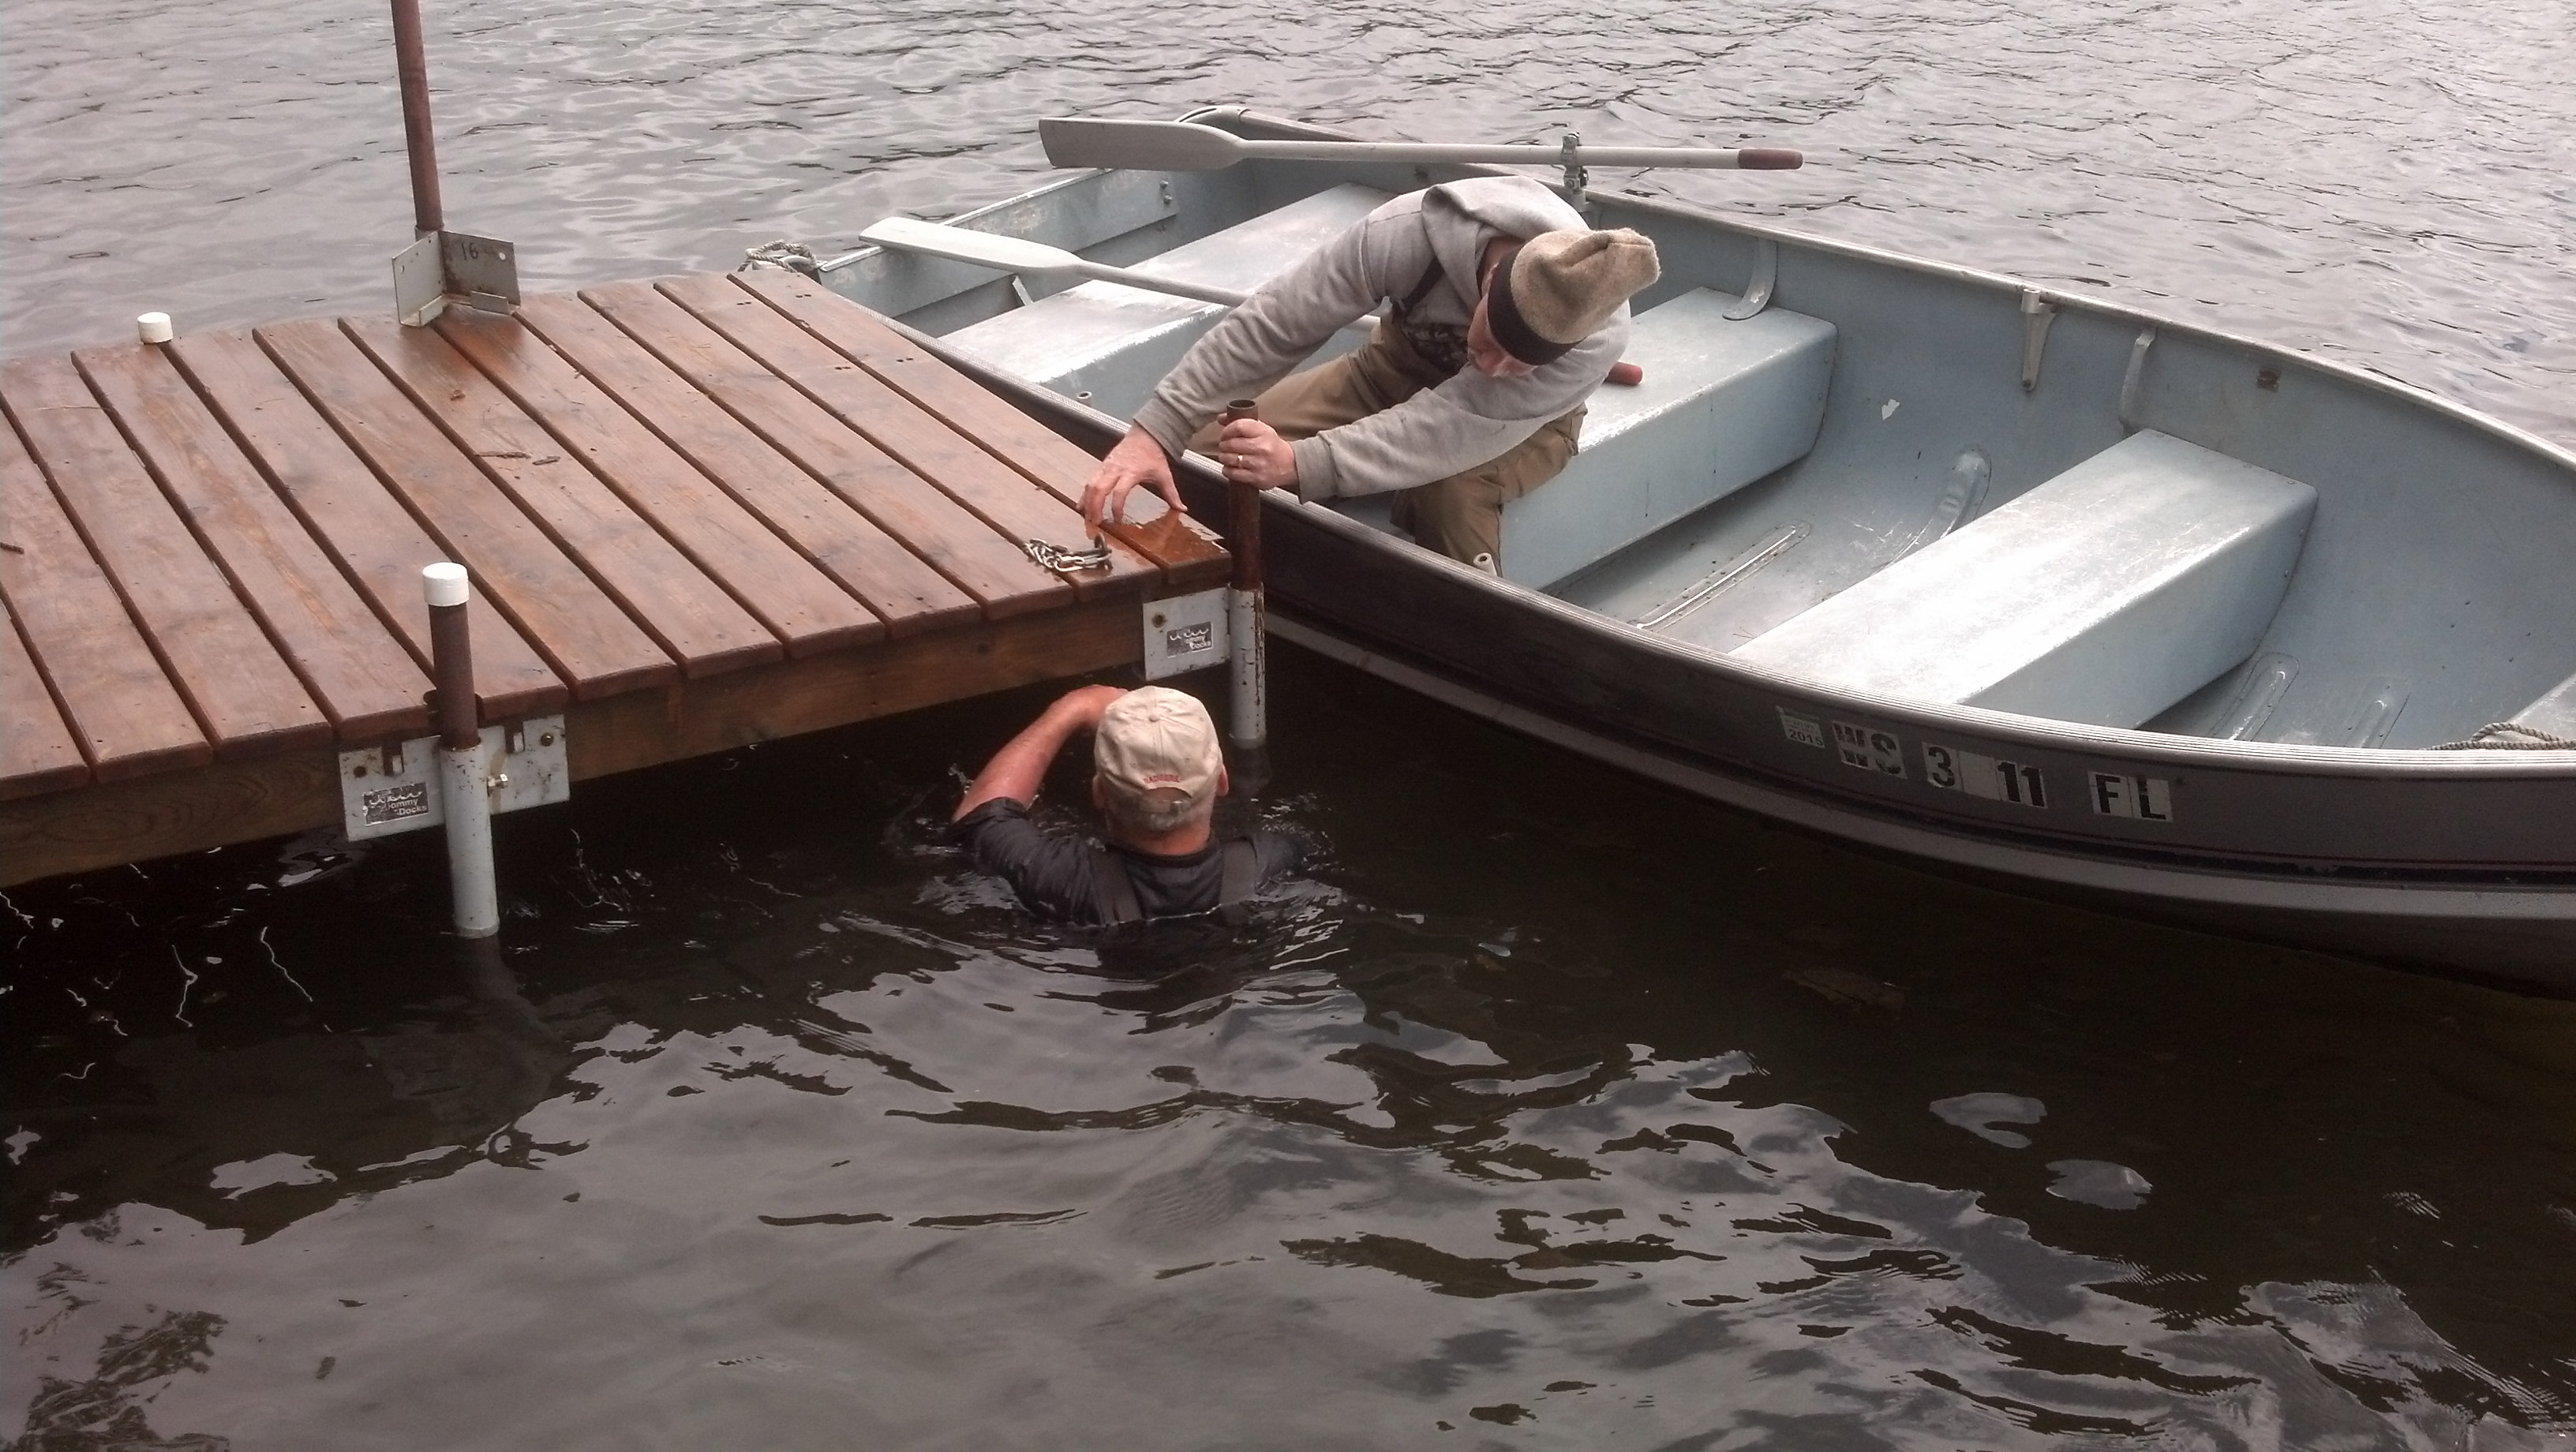 I think John A. is getting the better part of the deal. Thanks John O. for braving the cold water to help us put our docks in.